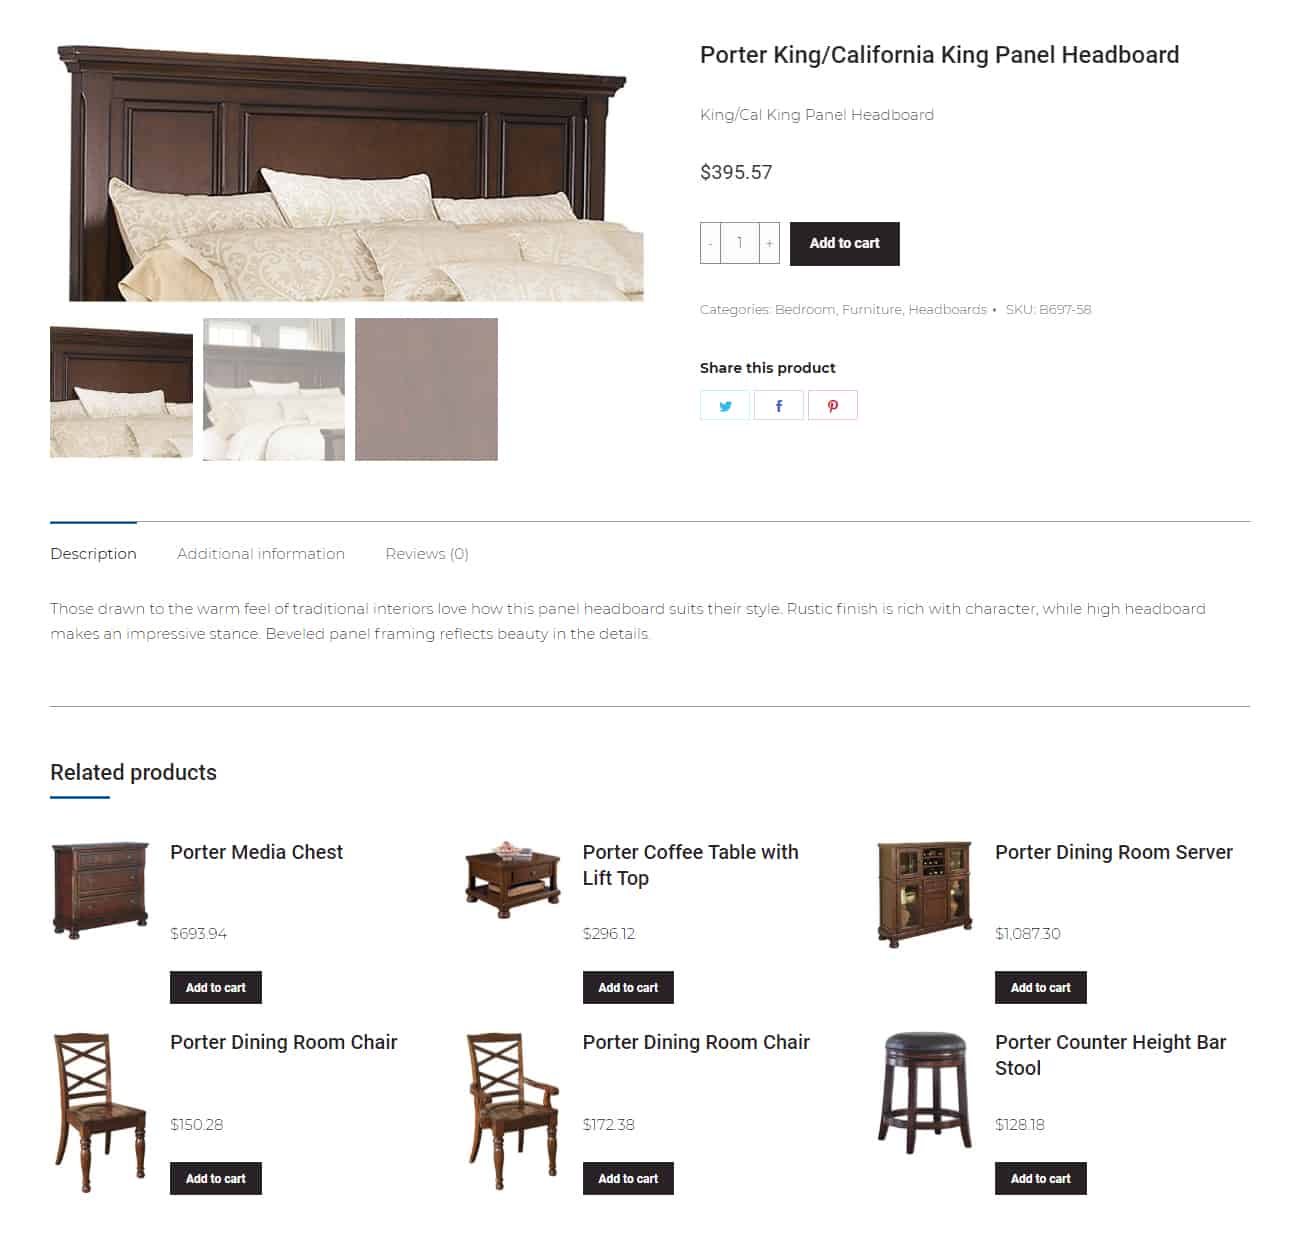 Woocommerce Related Products by Name